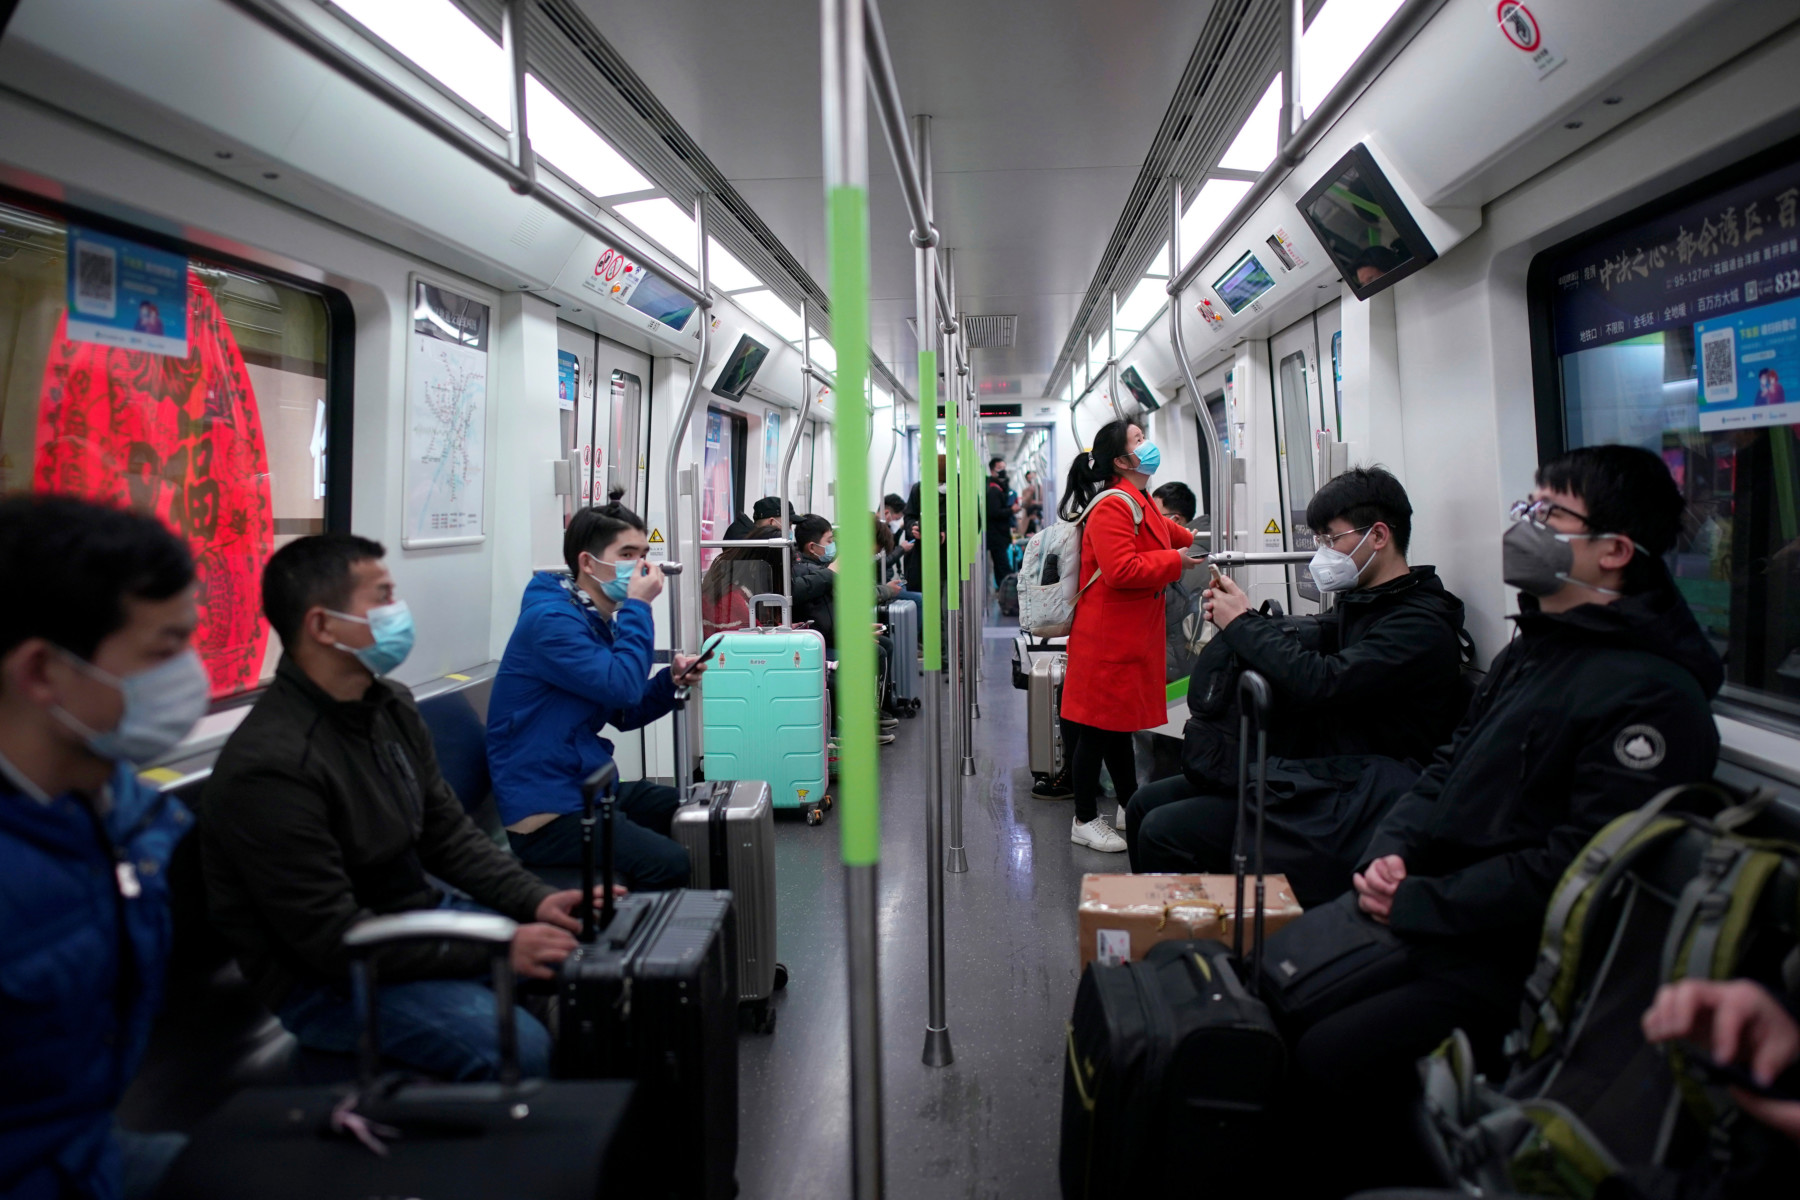 Passengers travelling on the subway in China